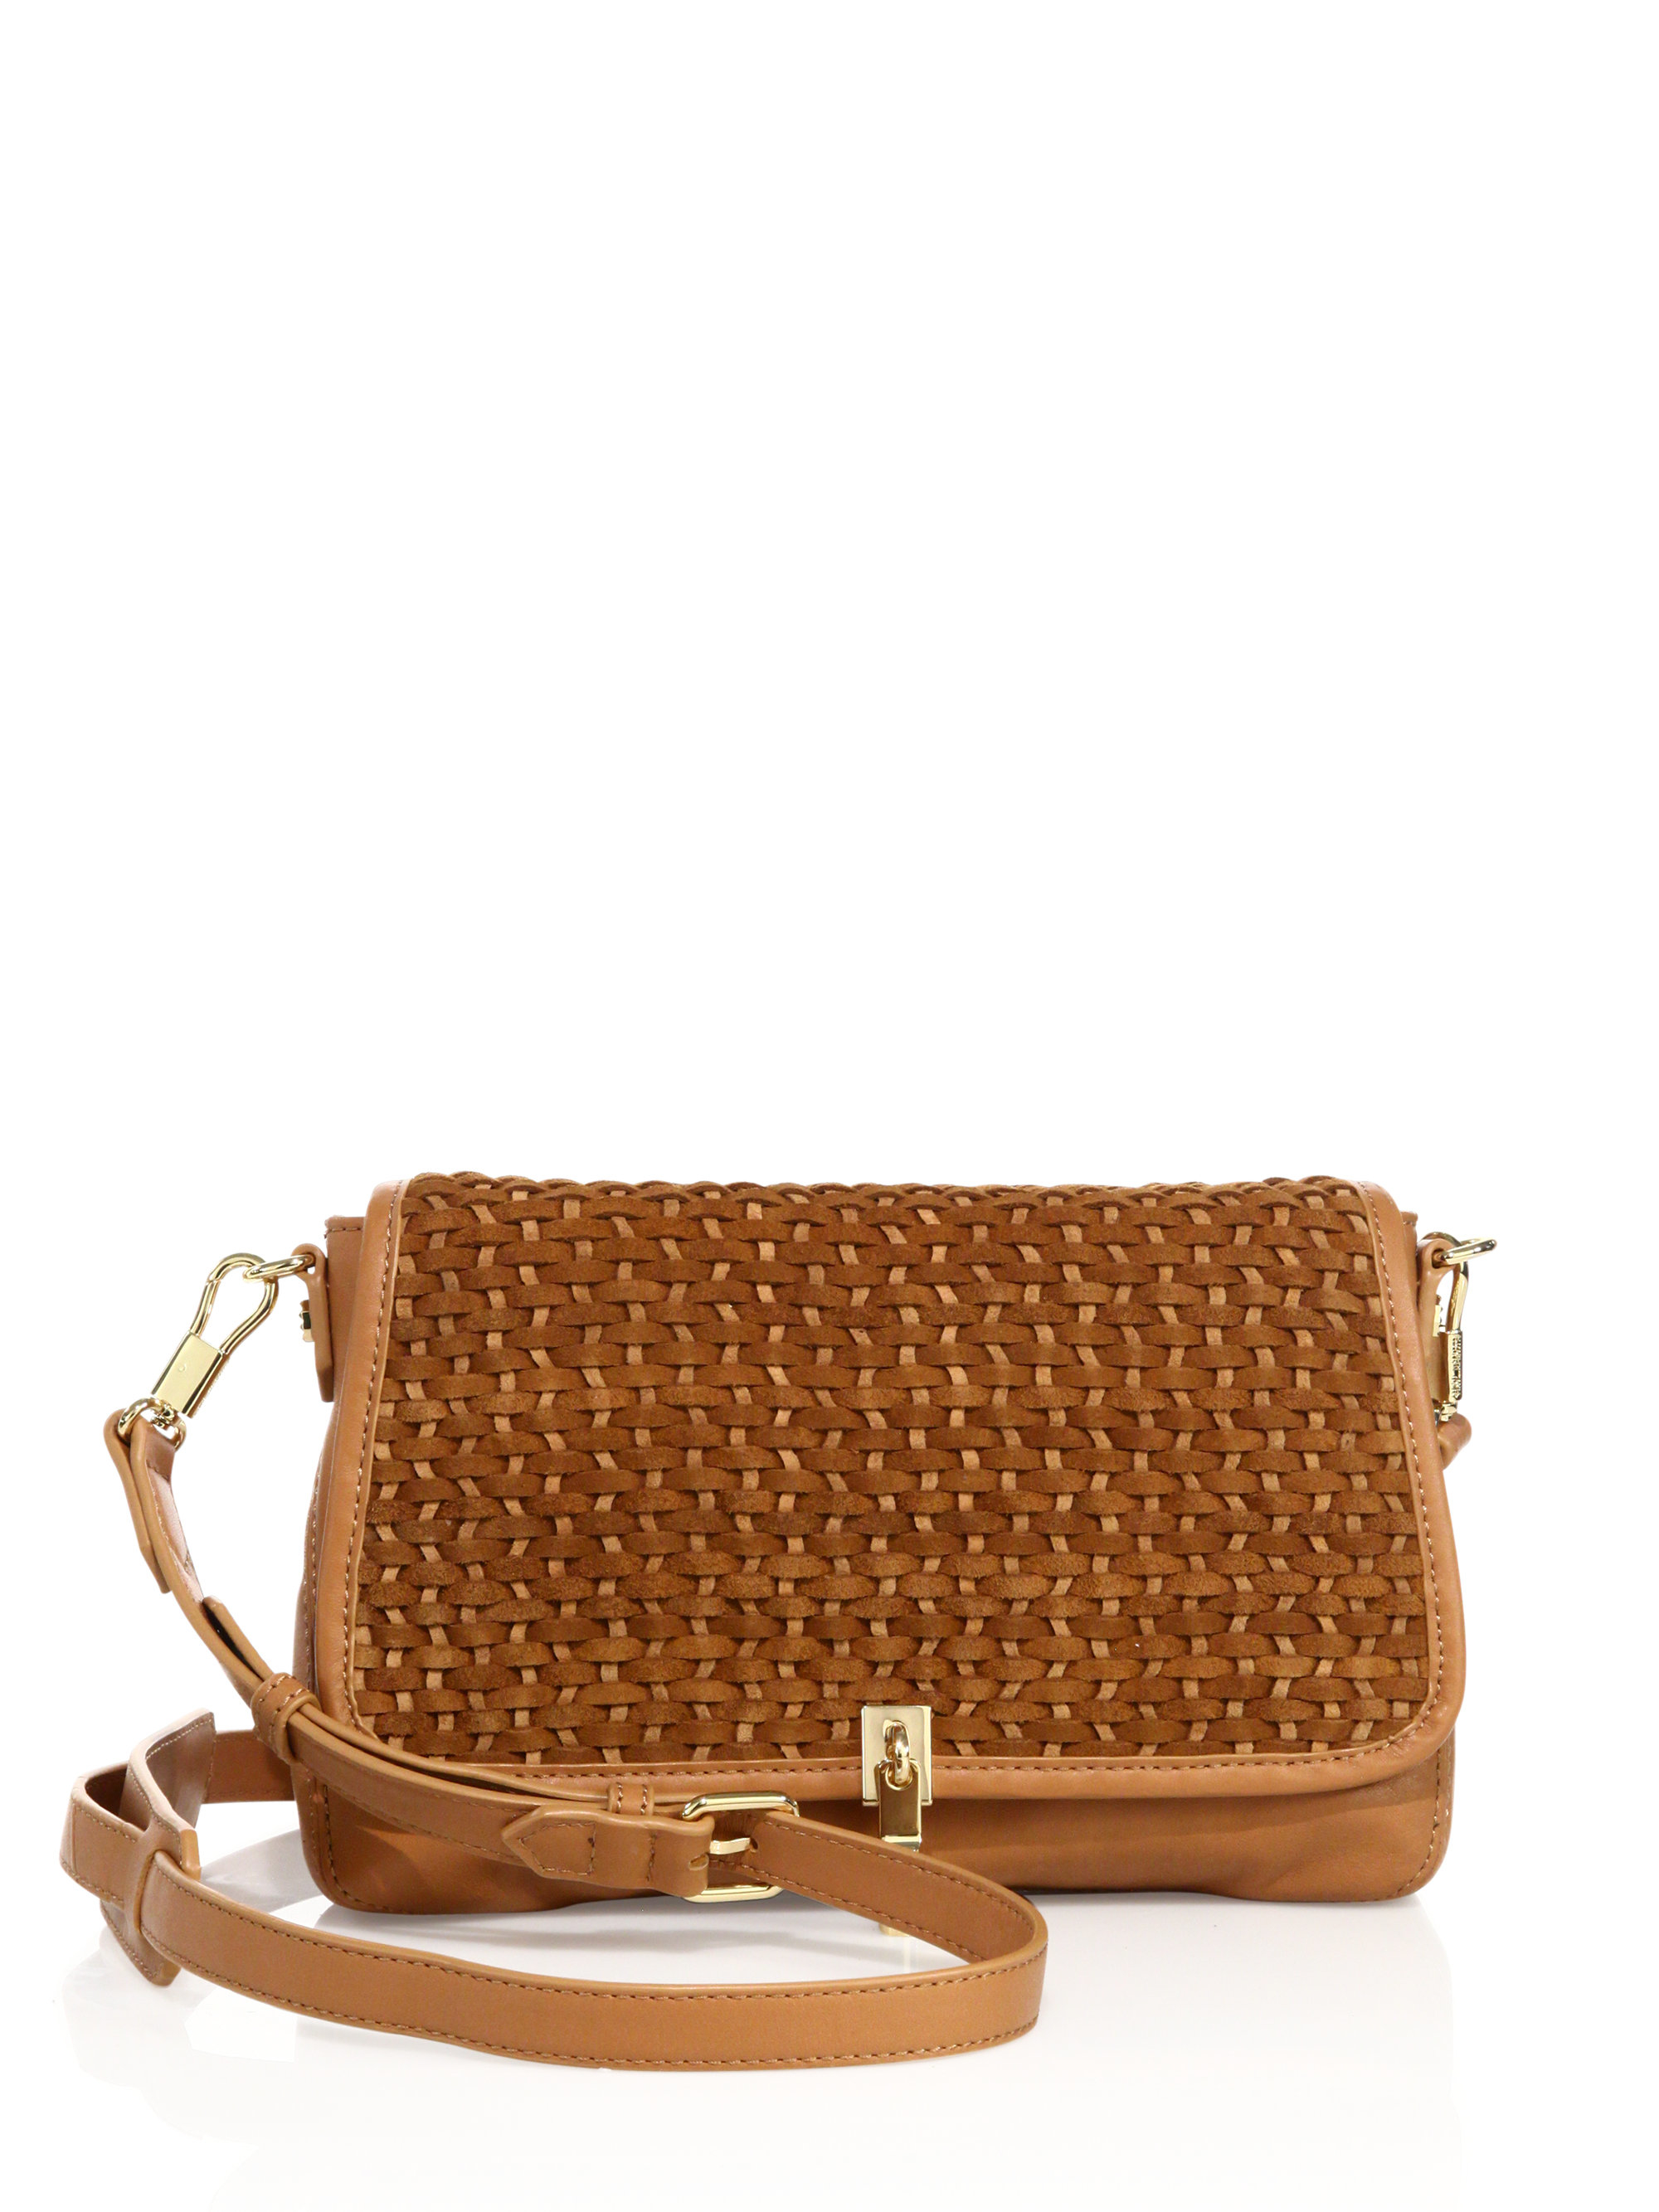 Leather Woven Crossbody Bag 16